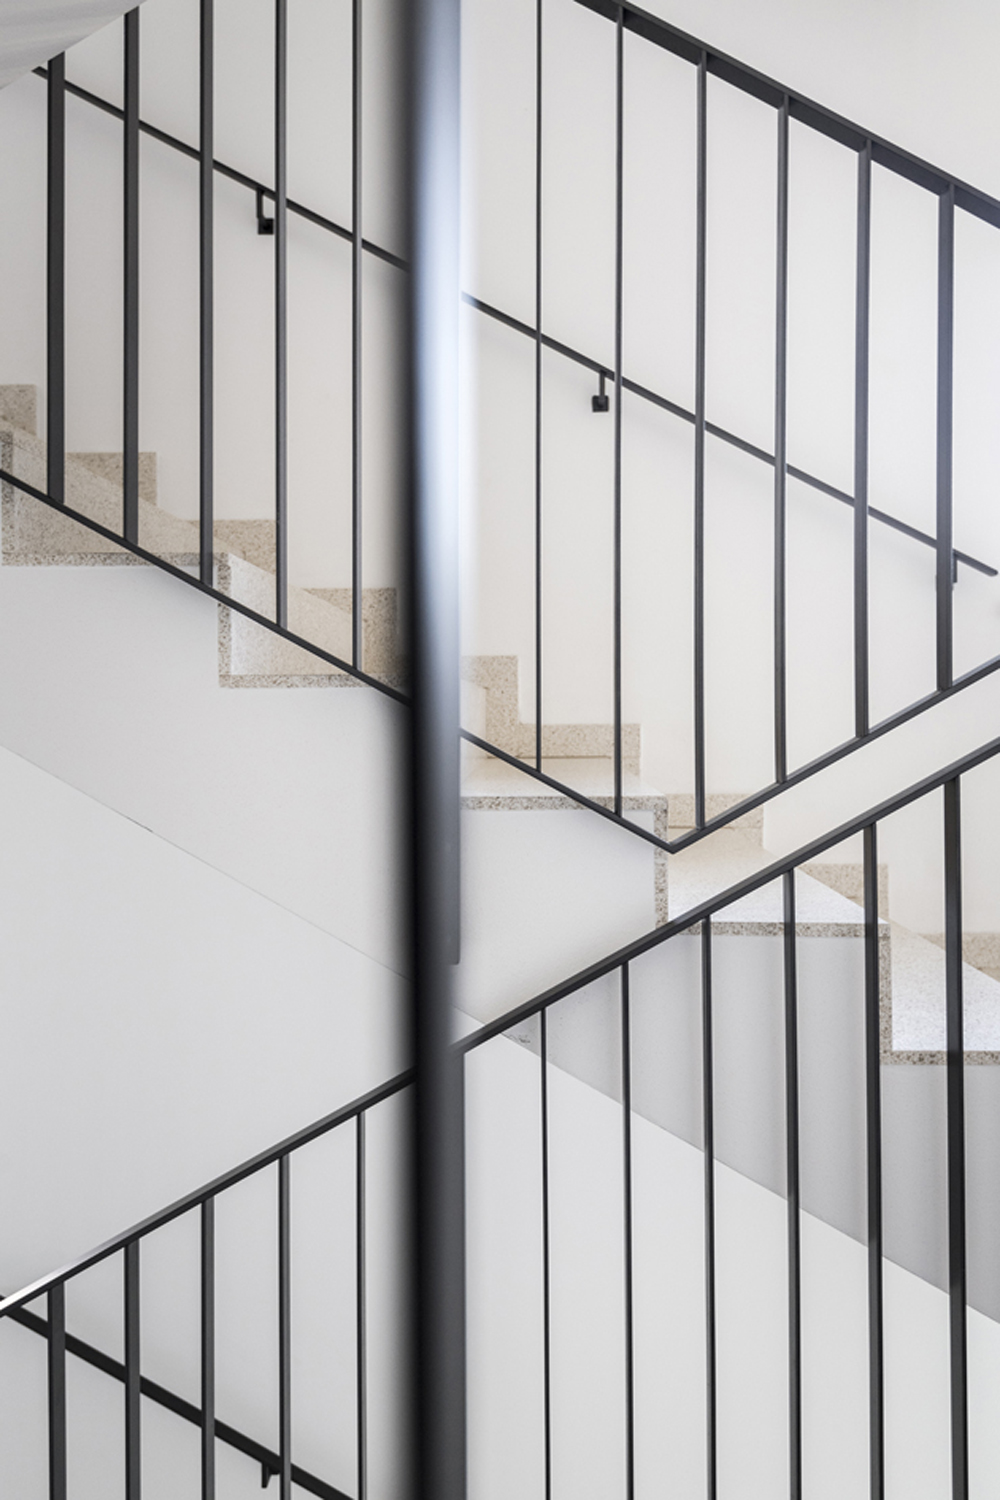 Indoor stair of the building